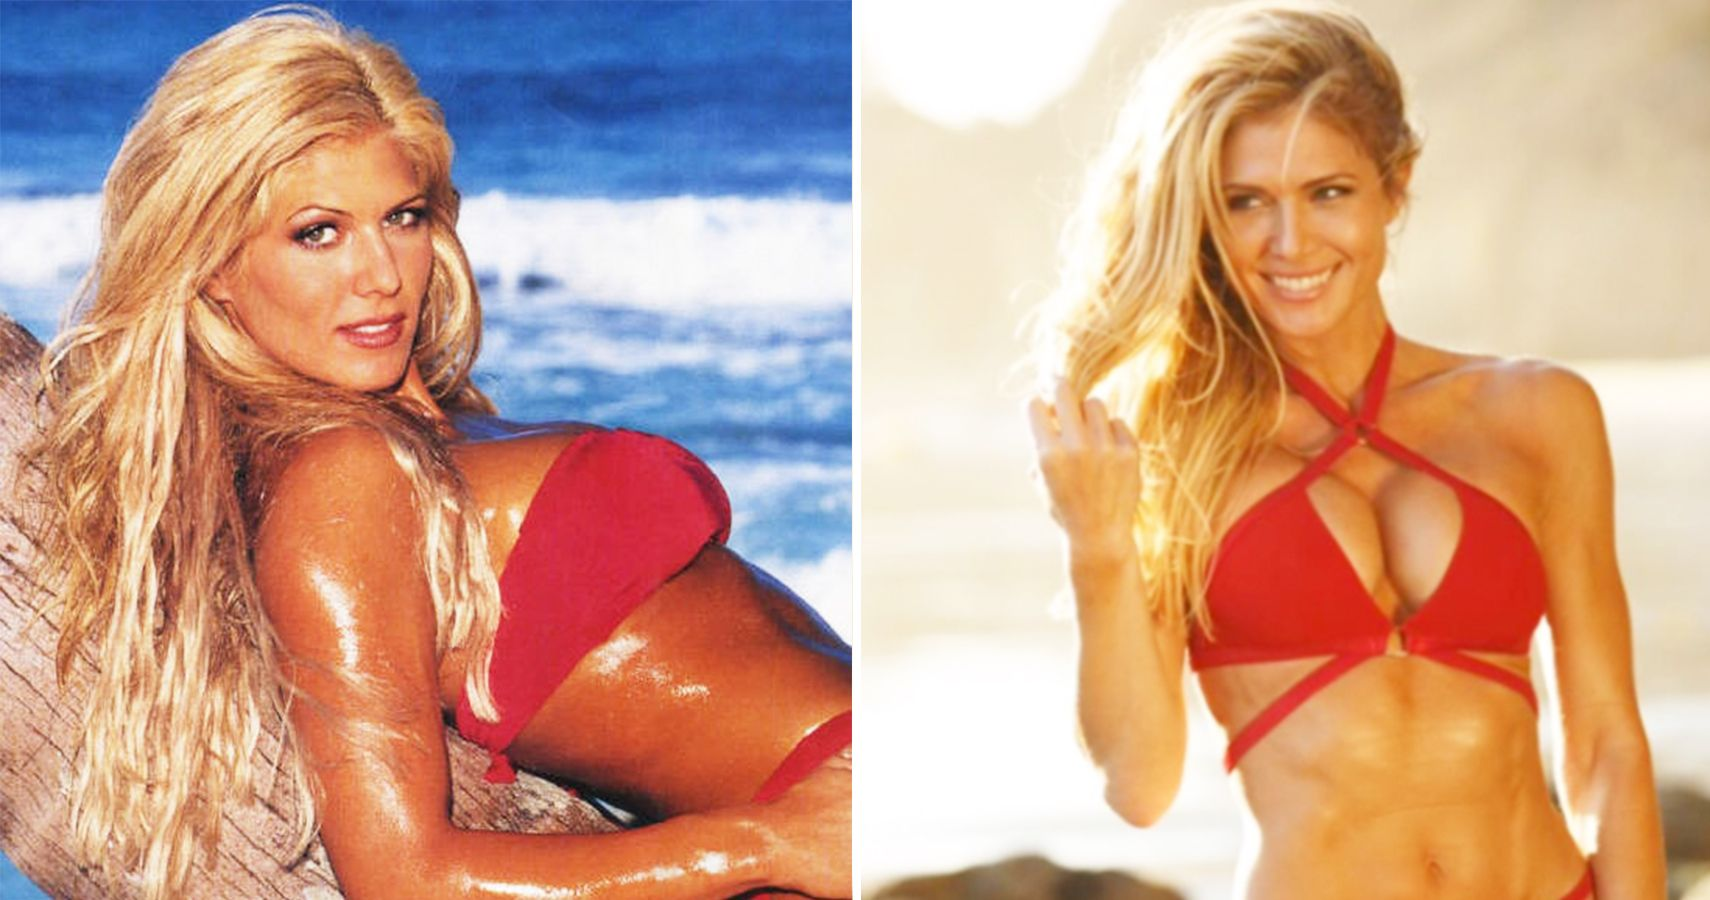 Who is torrie wilson dating now